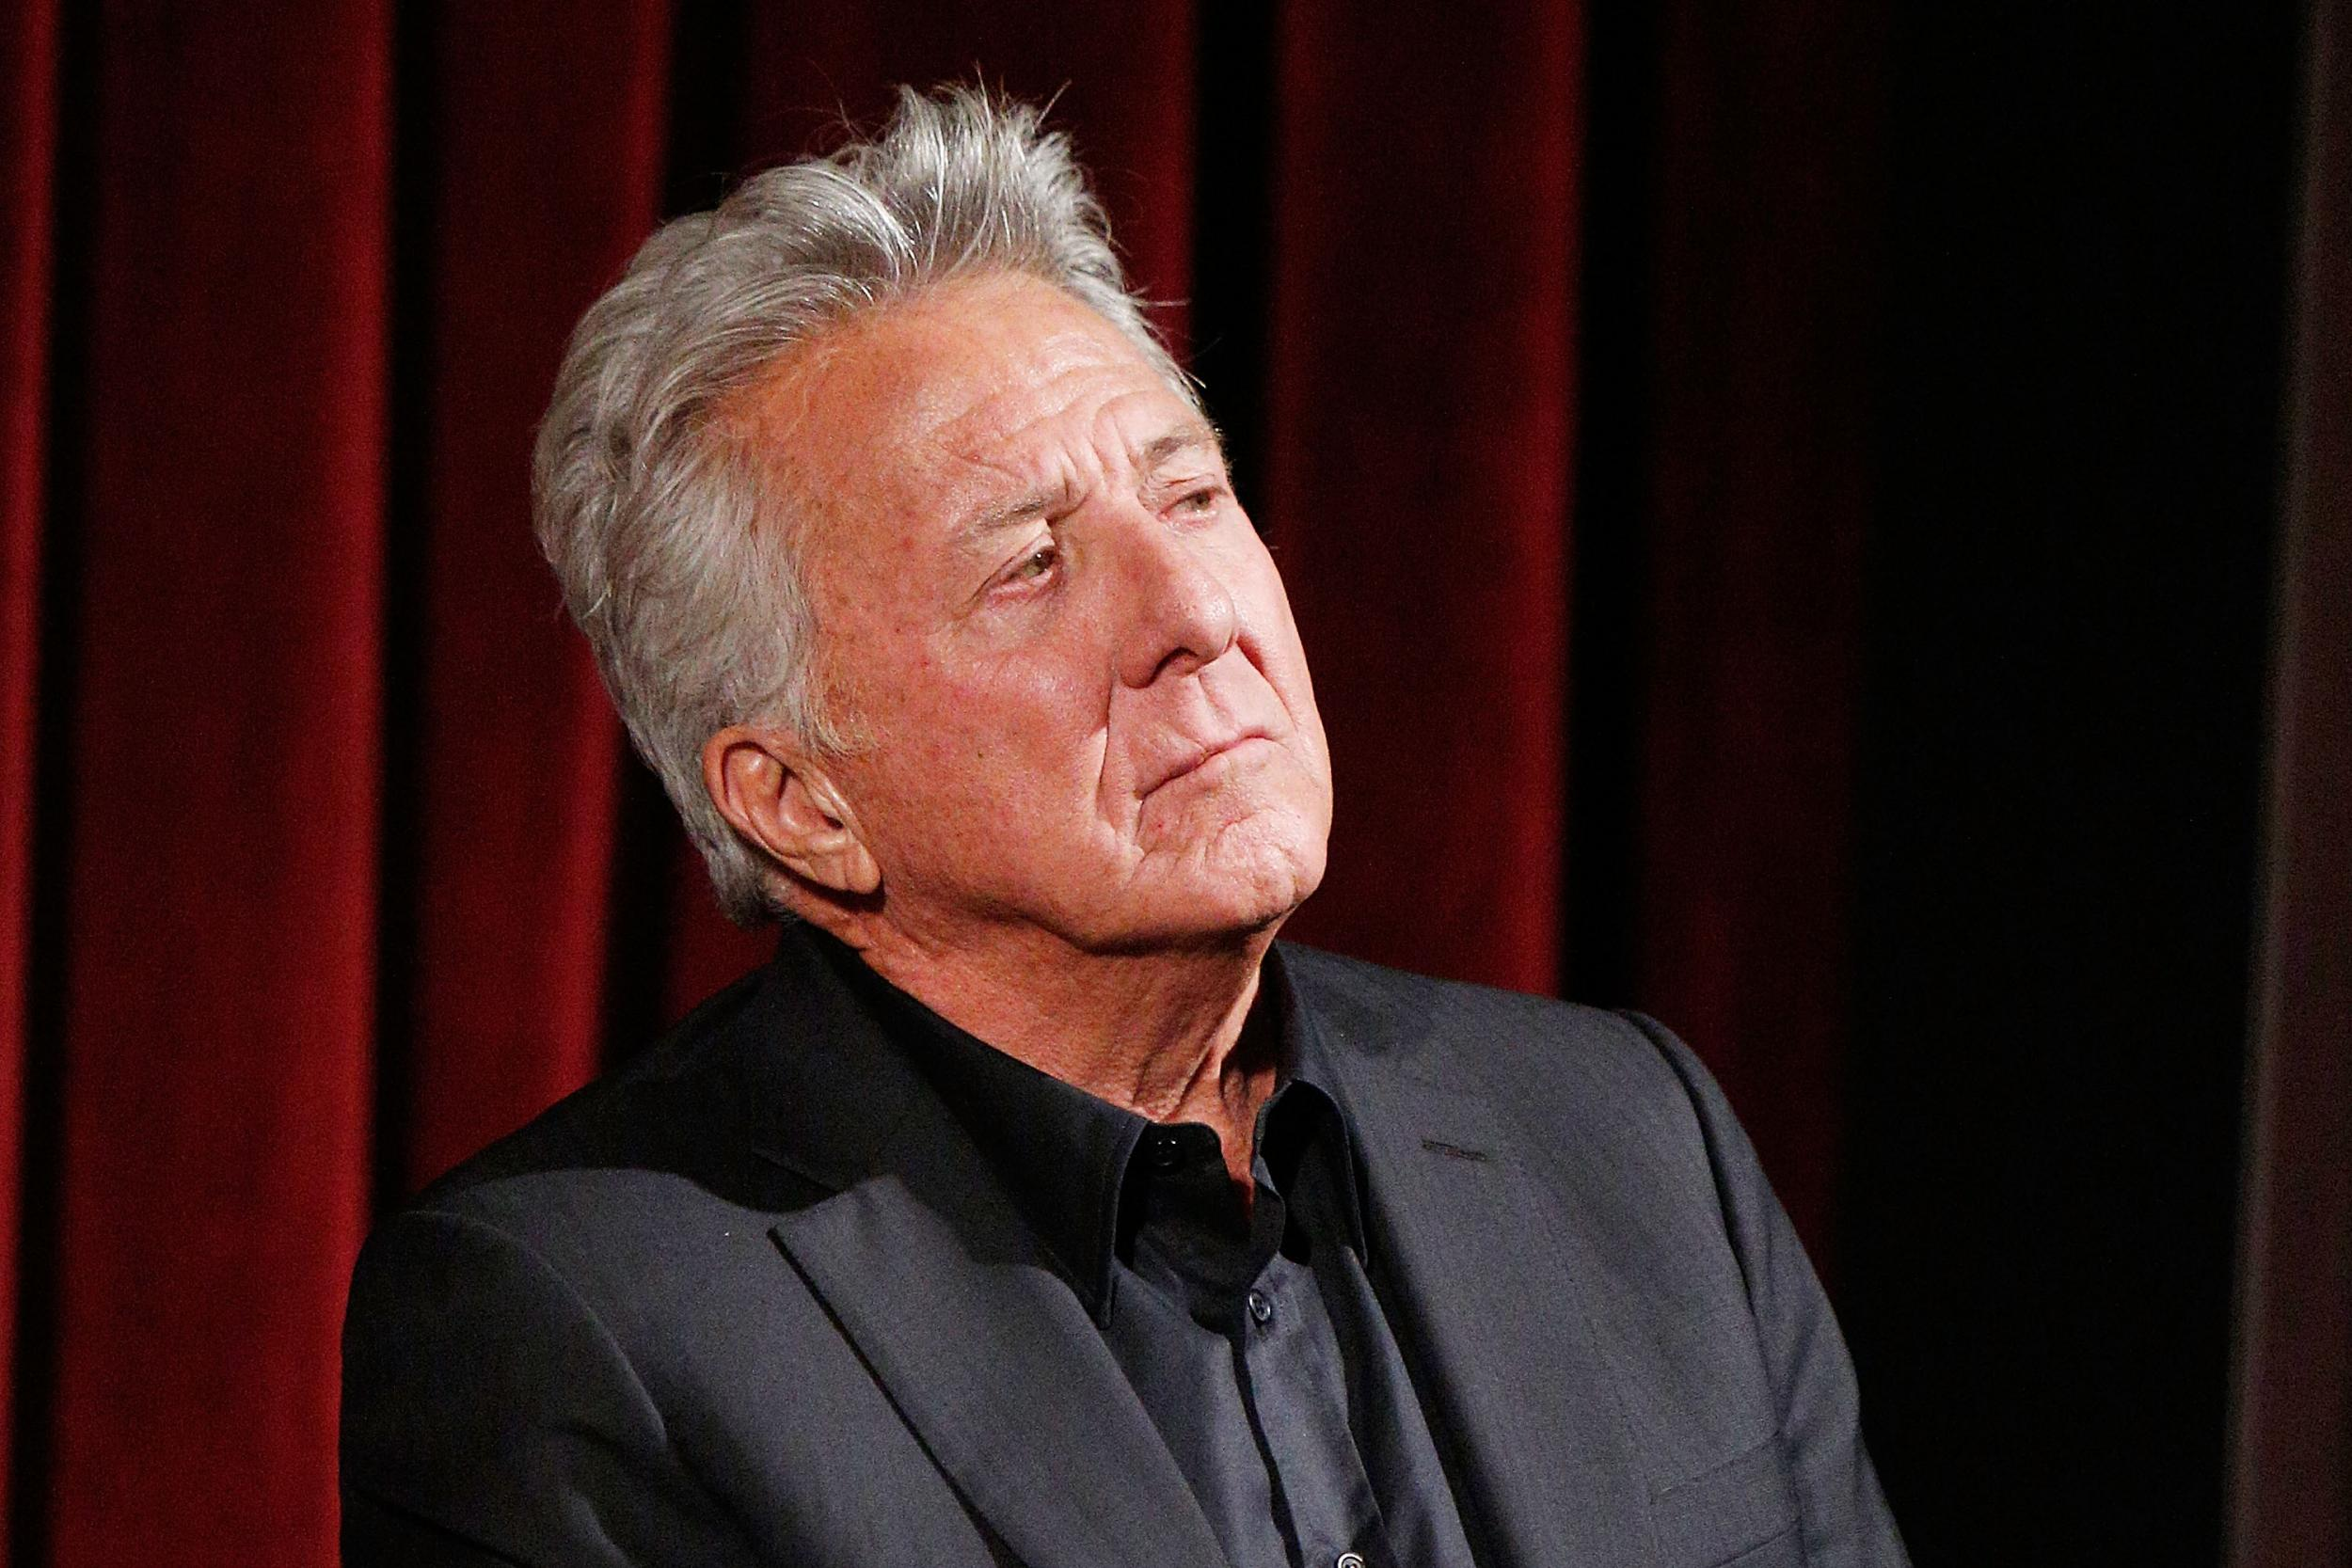 Dustin Hoffman New Sexual Harassment Allegation Made By Tv Producer From Incident In 1991 The Independent The Independent